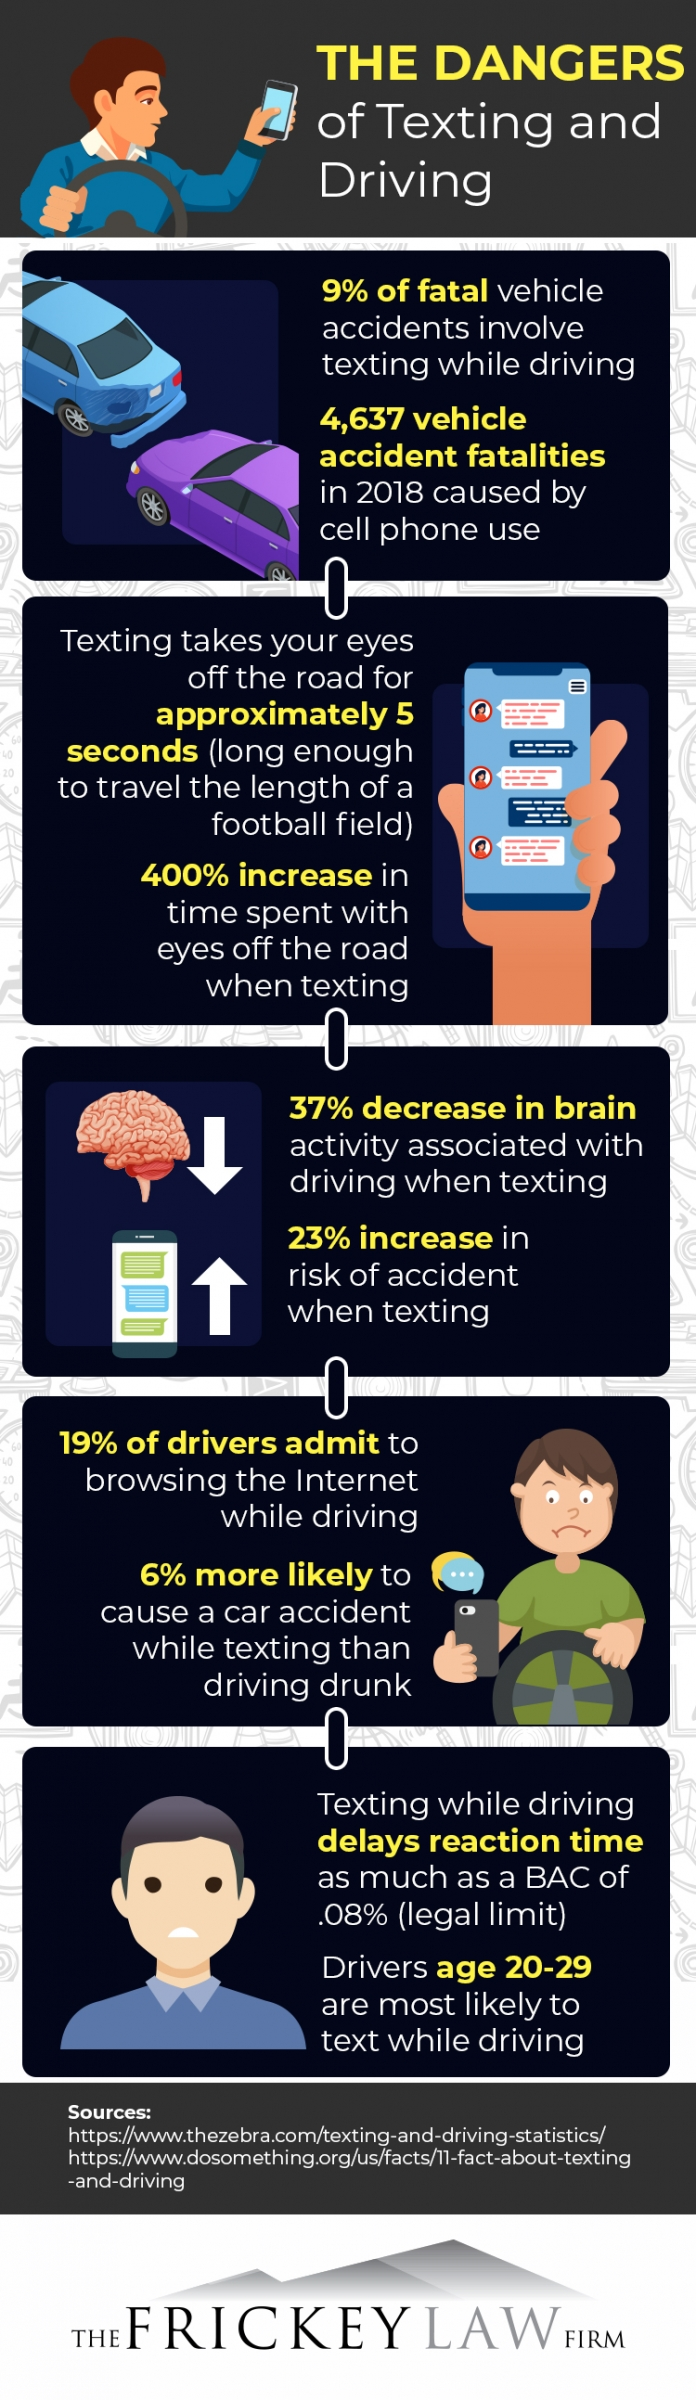 Texting While Driving Just As Dangerous As Drunk Driving